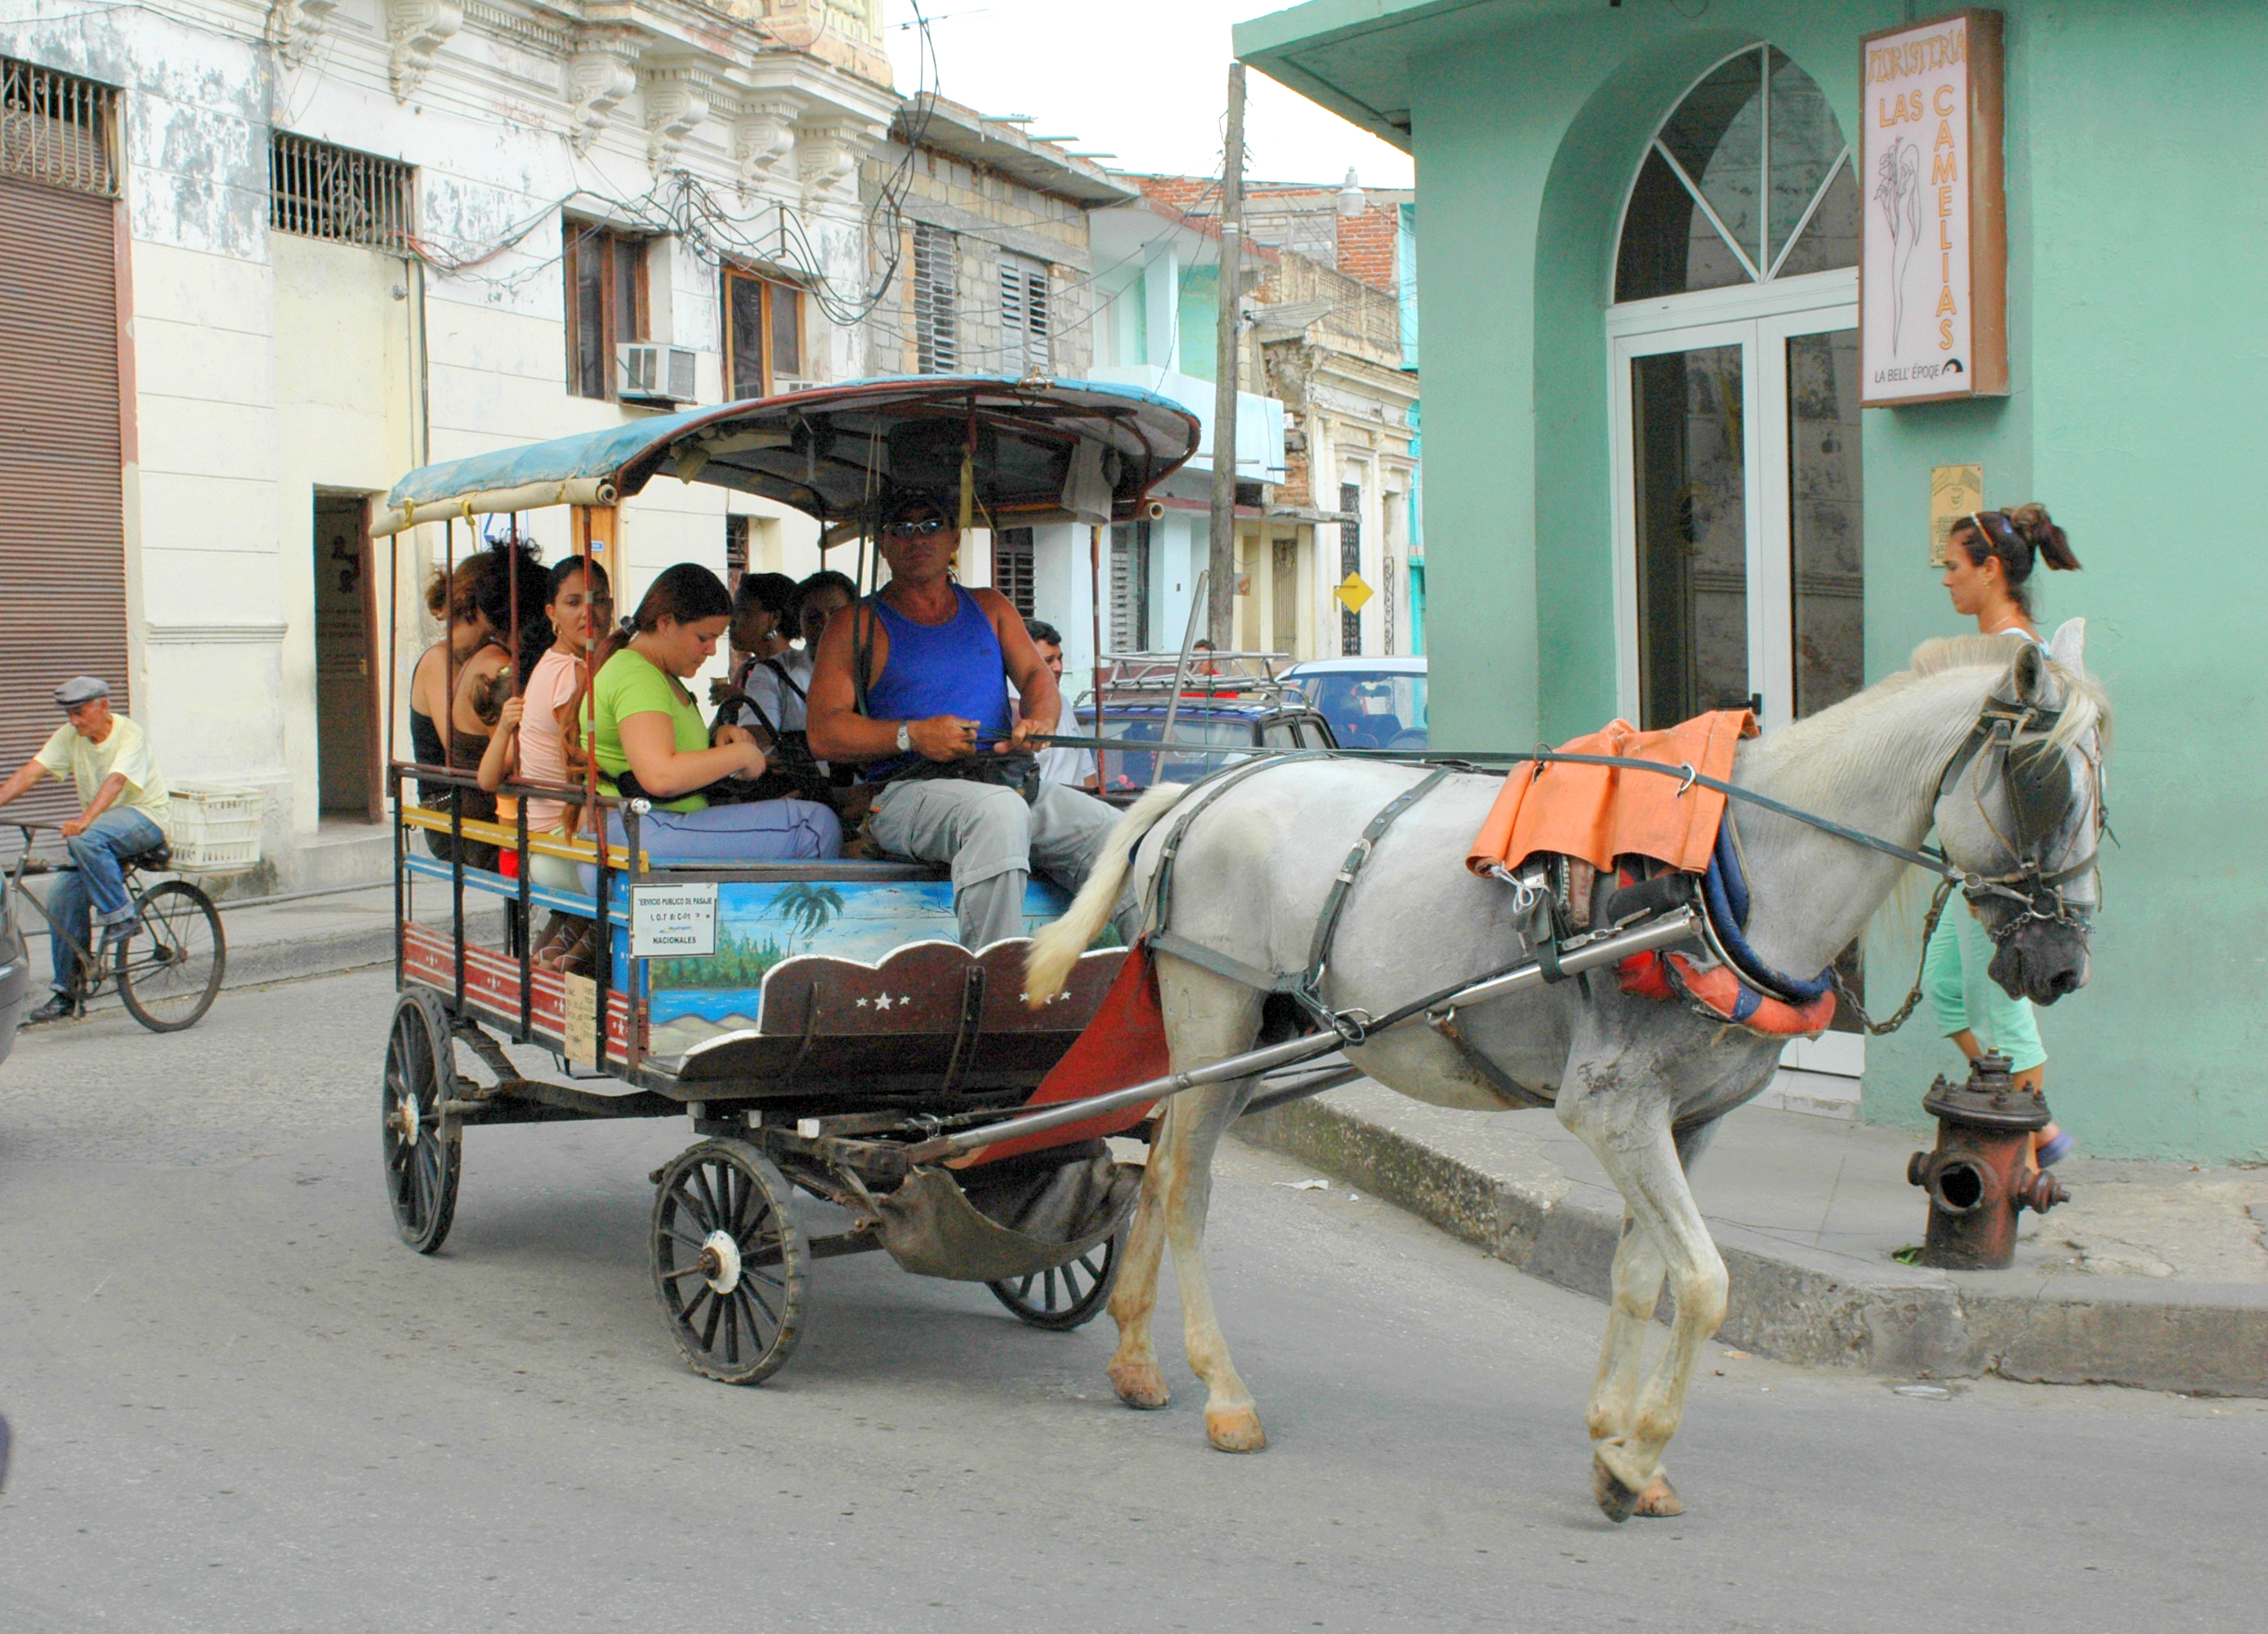 Horse-drawn carriages (carretones or coches de caballo) are one of the most common forms of local transportation in many areas of Cuba today.